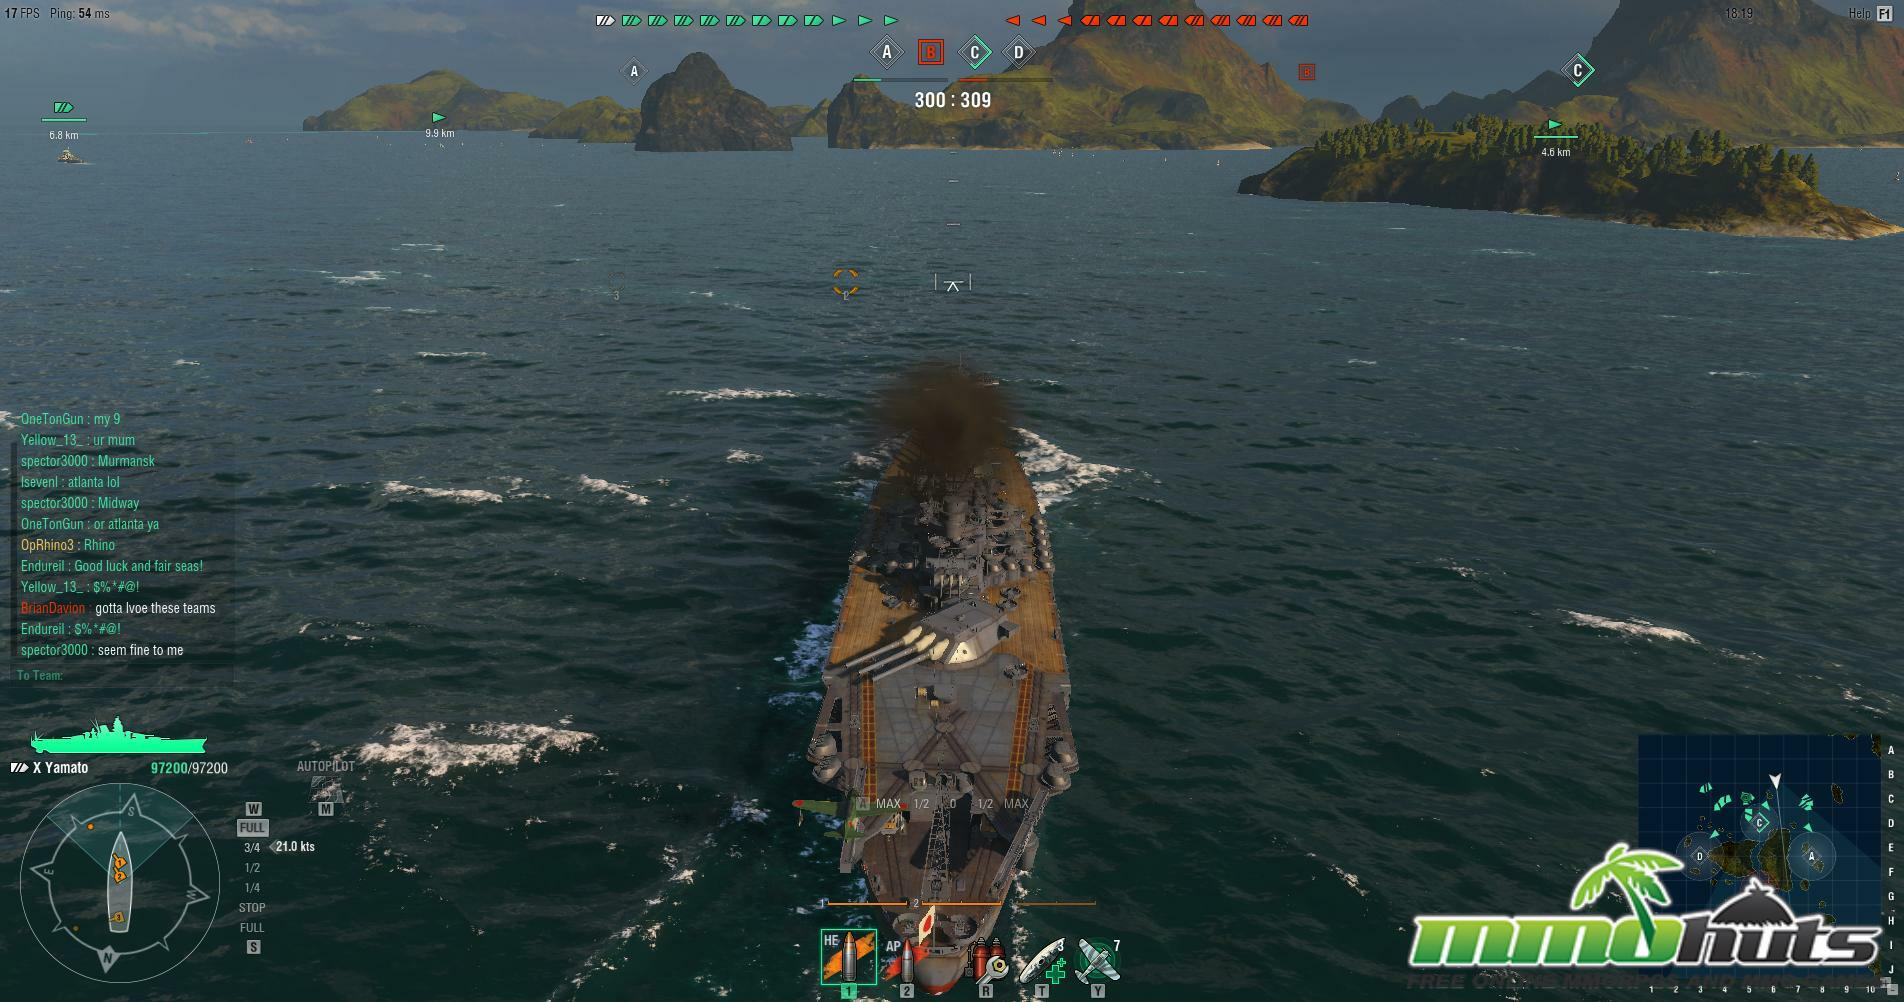 worldofwarships 2015-10-01 16-30-17-35